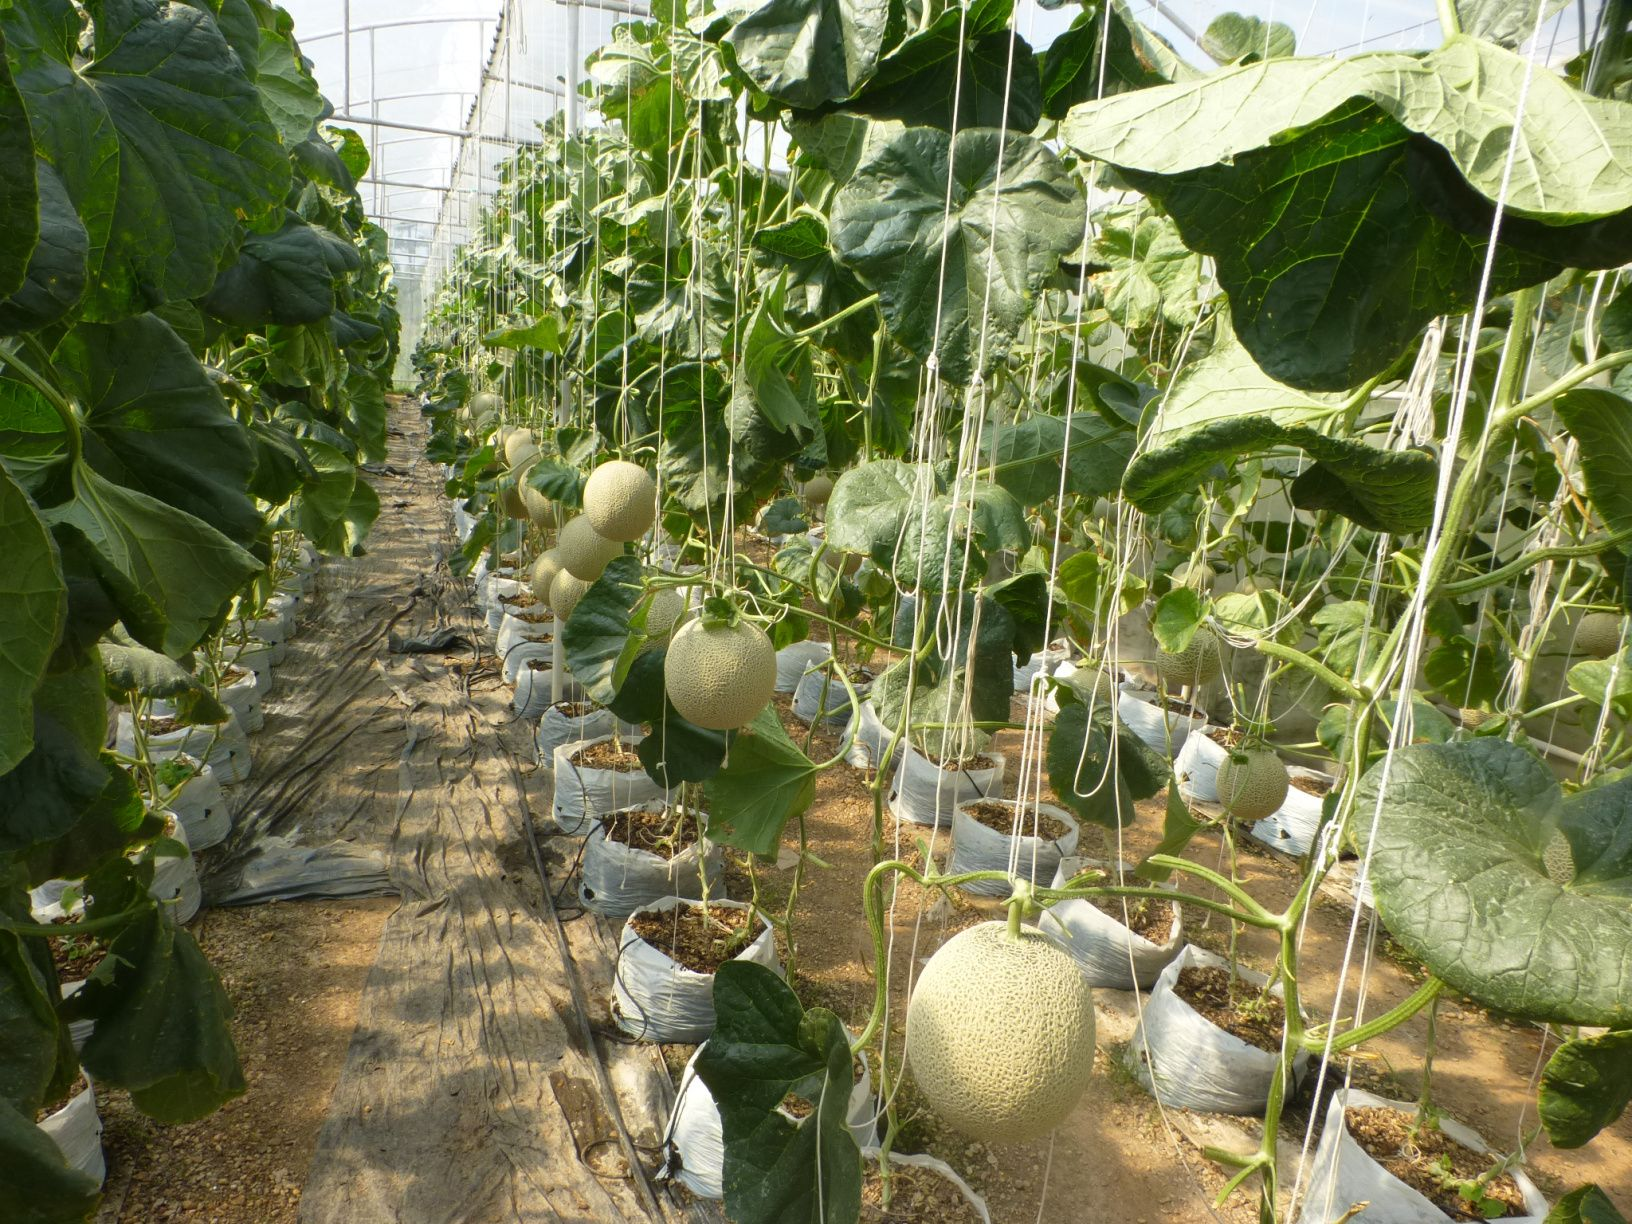 Growing Cantaloupe In Udon Thani I See 2 Places Now Growing Indoors Here Is Photos I Can Share With You All All The Melo Growing Cantaloupe Udon Thani Udon Download 1,674 cantaloupe growing stock photos for free or amazingly low rates! growing cantaloupe in udon thani i see